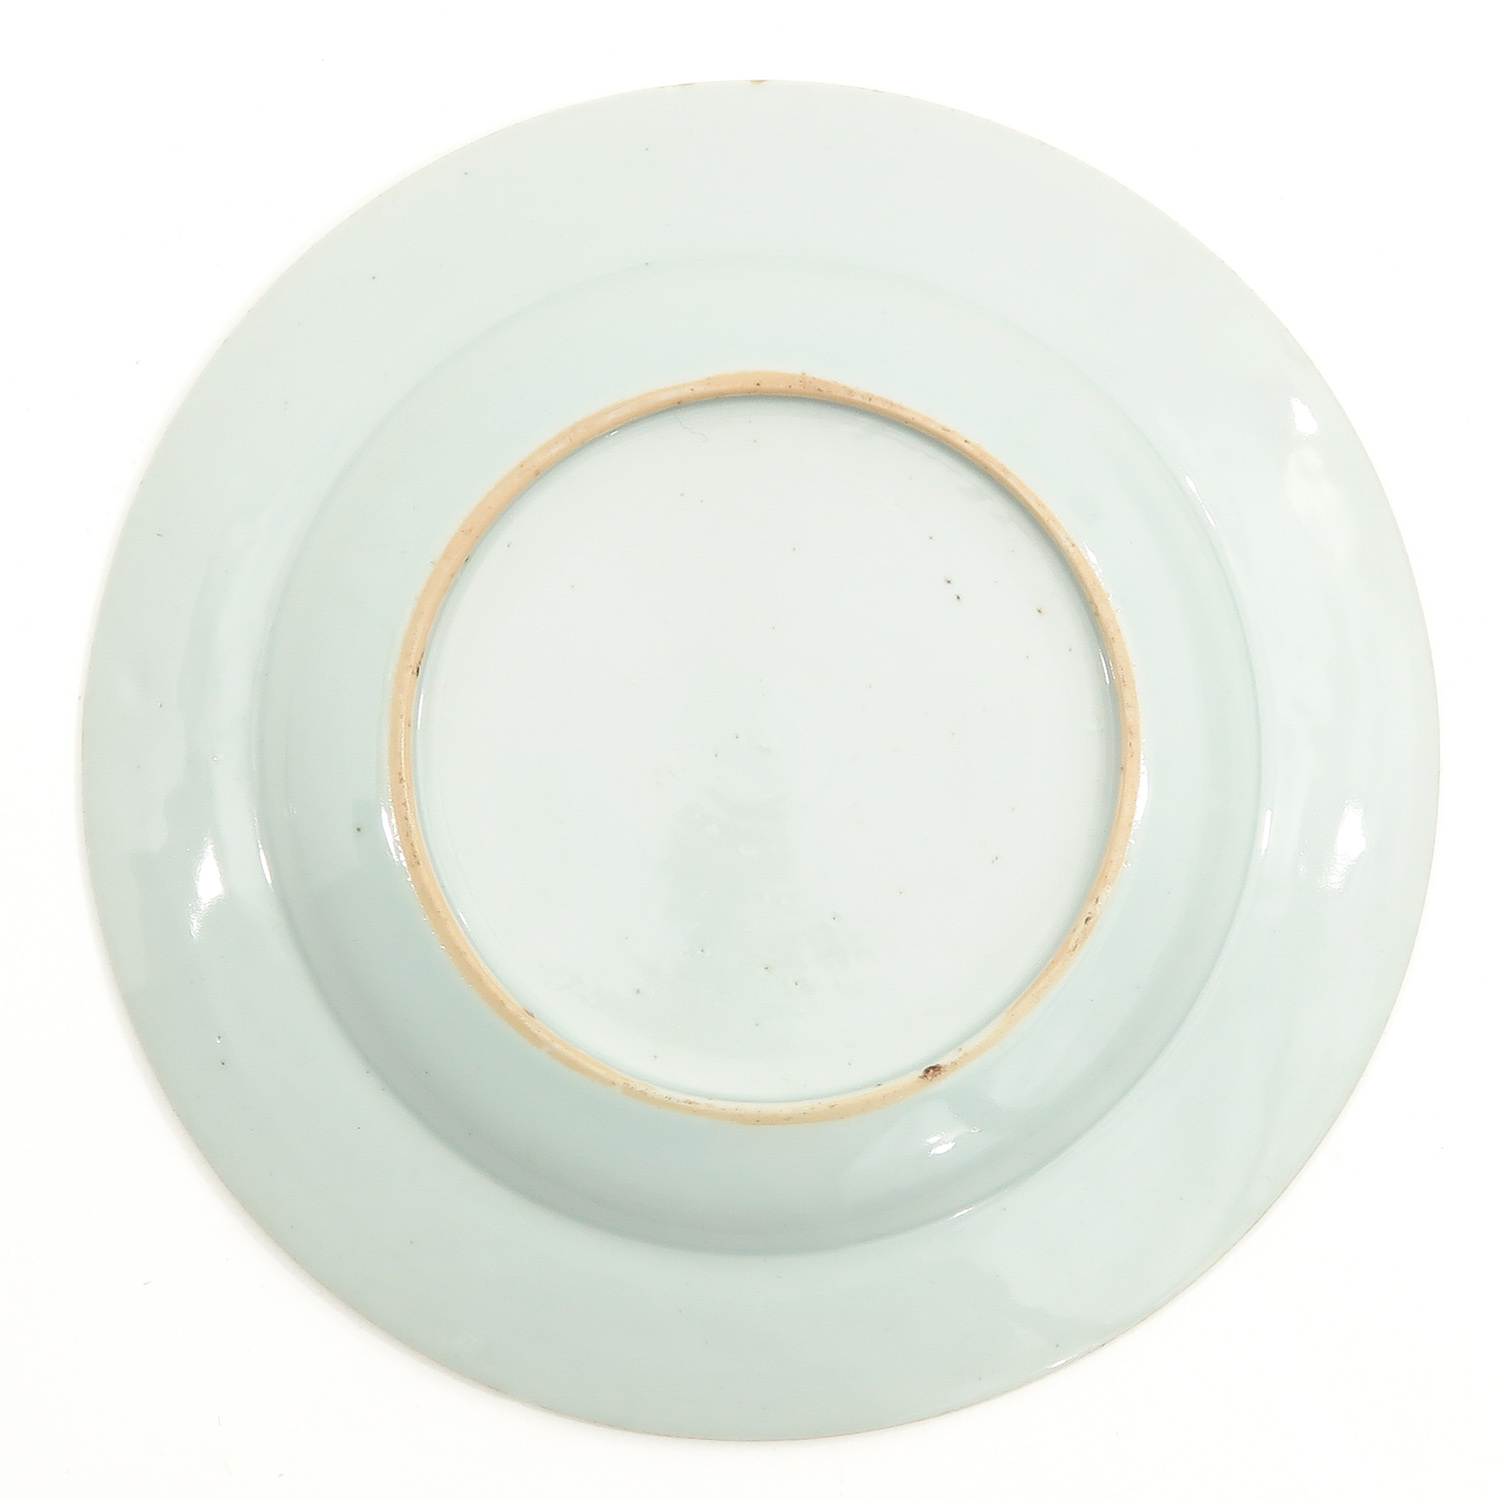 A Series of 3 Blue and White Plates - Image 8 of 10